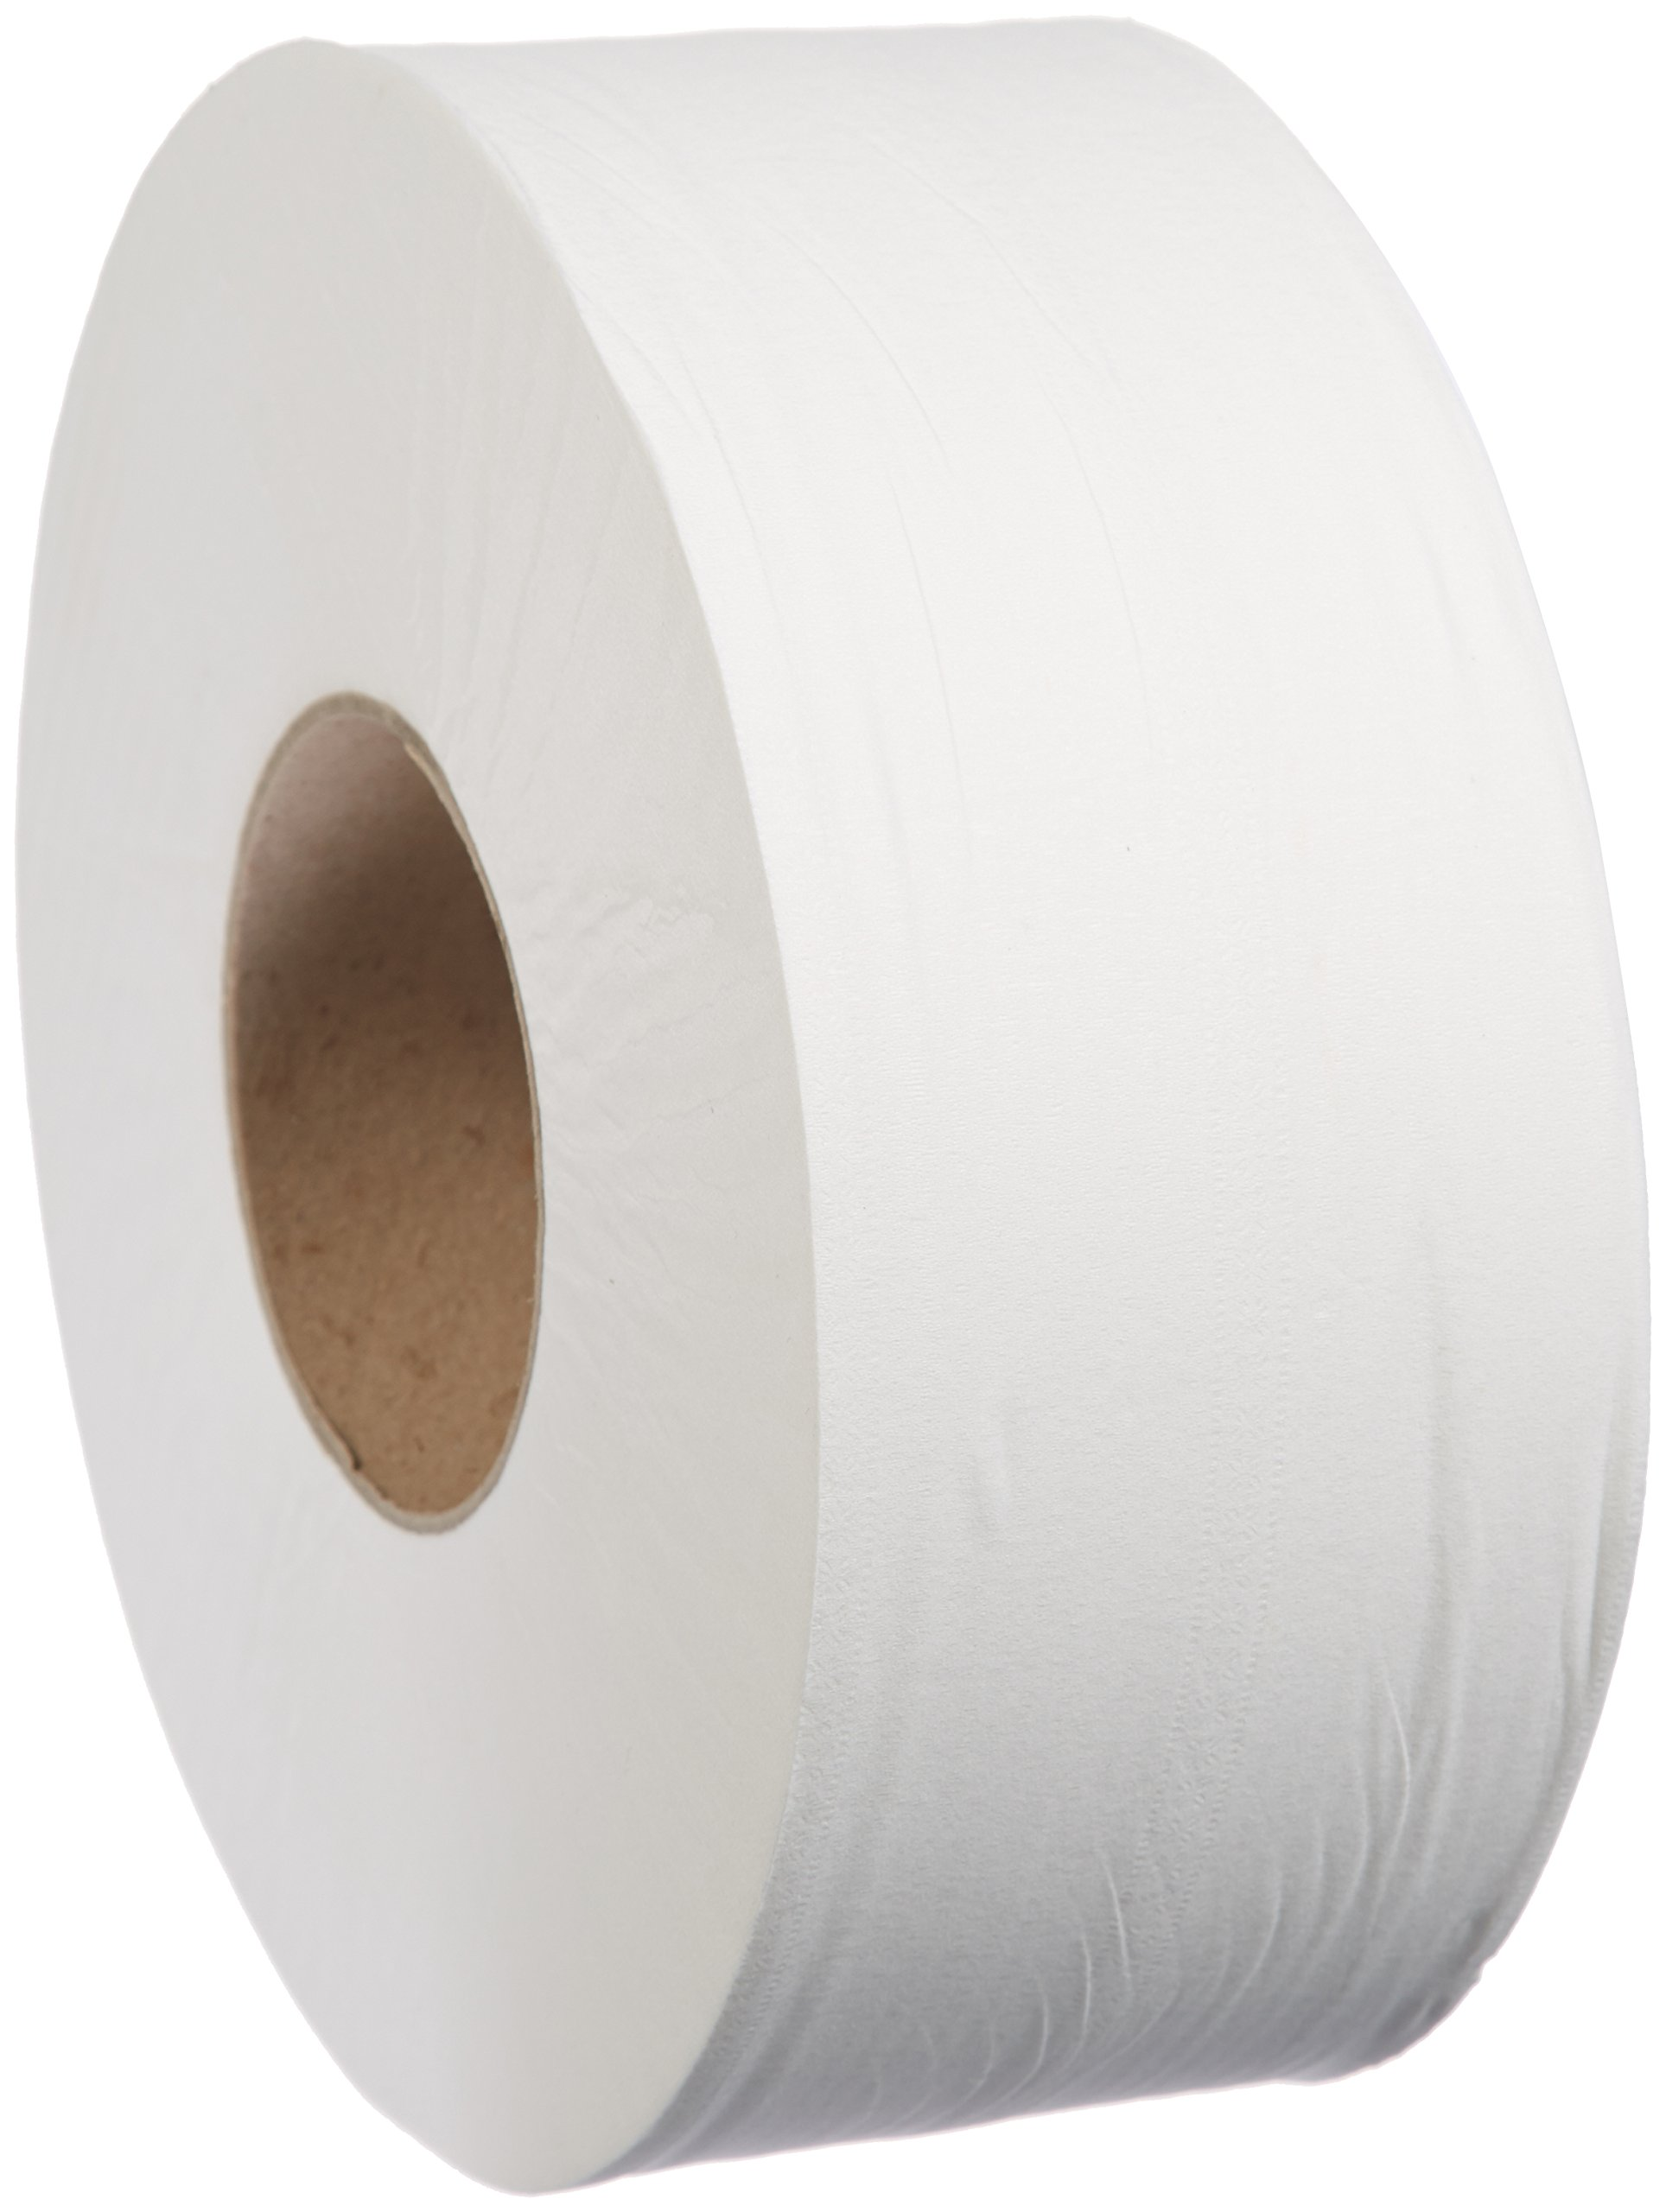 AmazonBasics Professional Jumbo Roll Toilet Tissue for Businesses, 2-Ply, 800 Feet per Roll, 12 Rolls by AmazonBasics (Image #1)